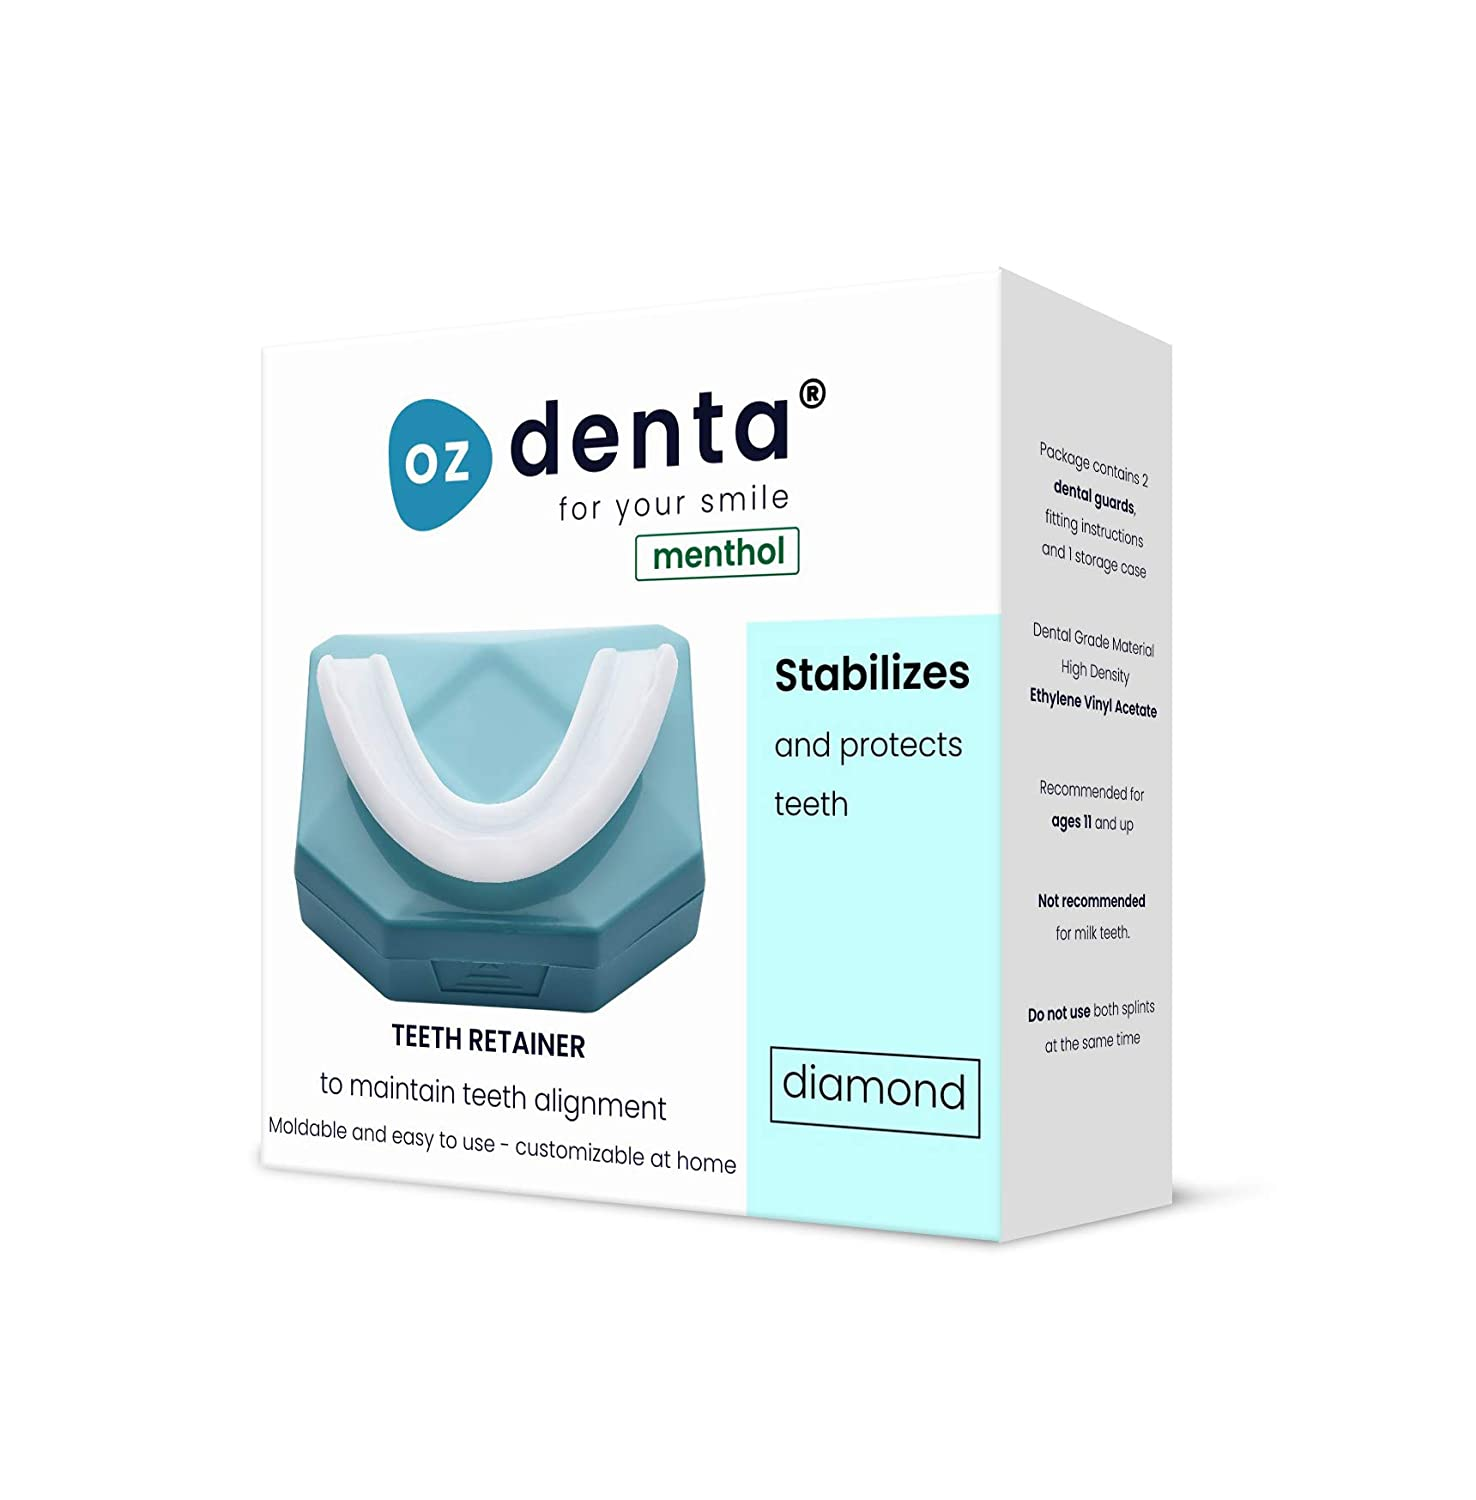 Menthol Ultimate Custom Fit Teeth Retainer Pack of 2 - Dental Mouth Guard For Teeth Grinding, Anti Grinding Dental Night Guard, Stops Bruxism, Tmj & Eliminates Teeth Clenching : Beauty